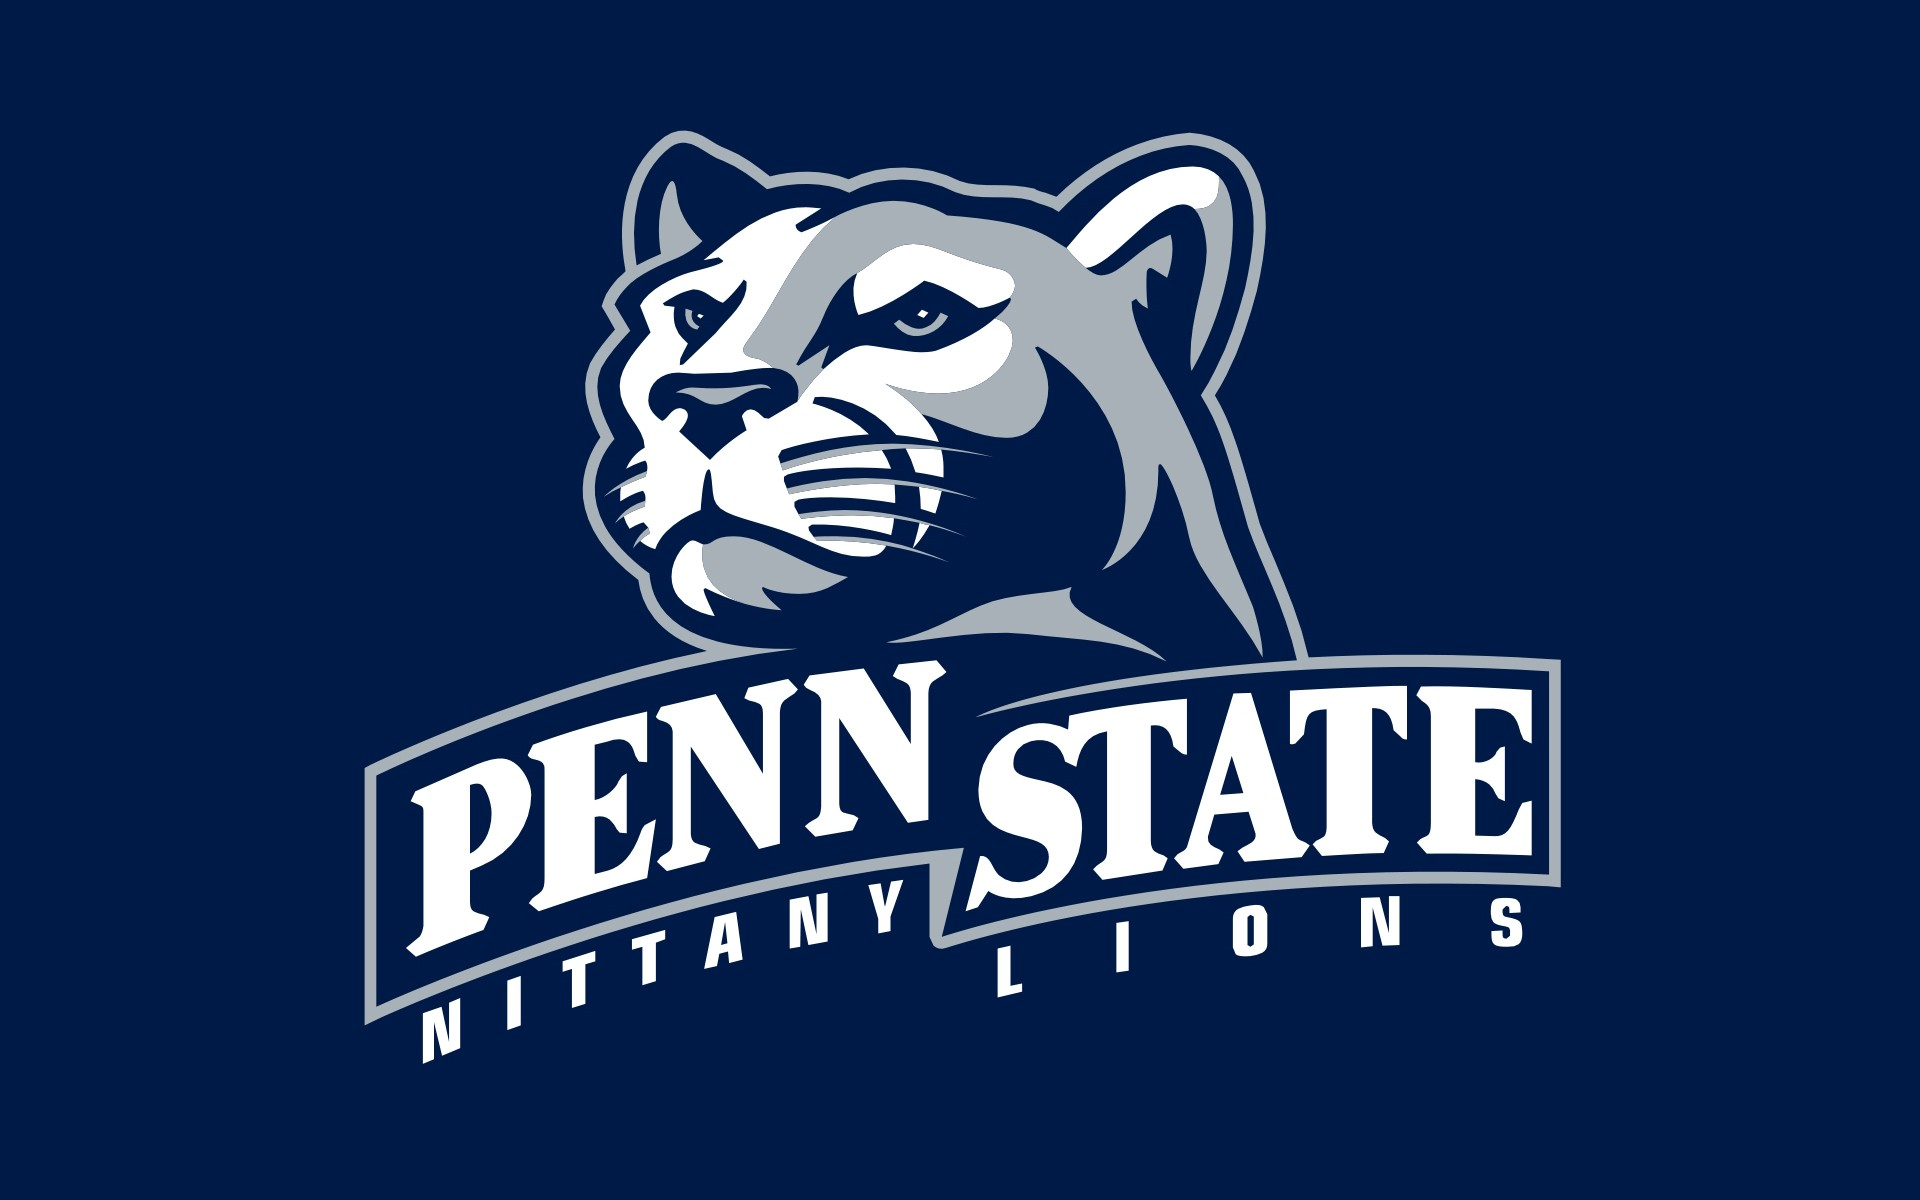 010 Penn State College Logos Essay Prompts Schreyer Honors Length Essays Formidable 2019 Topic 1920